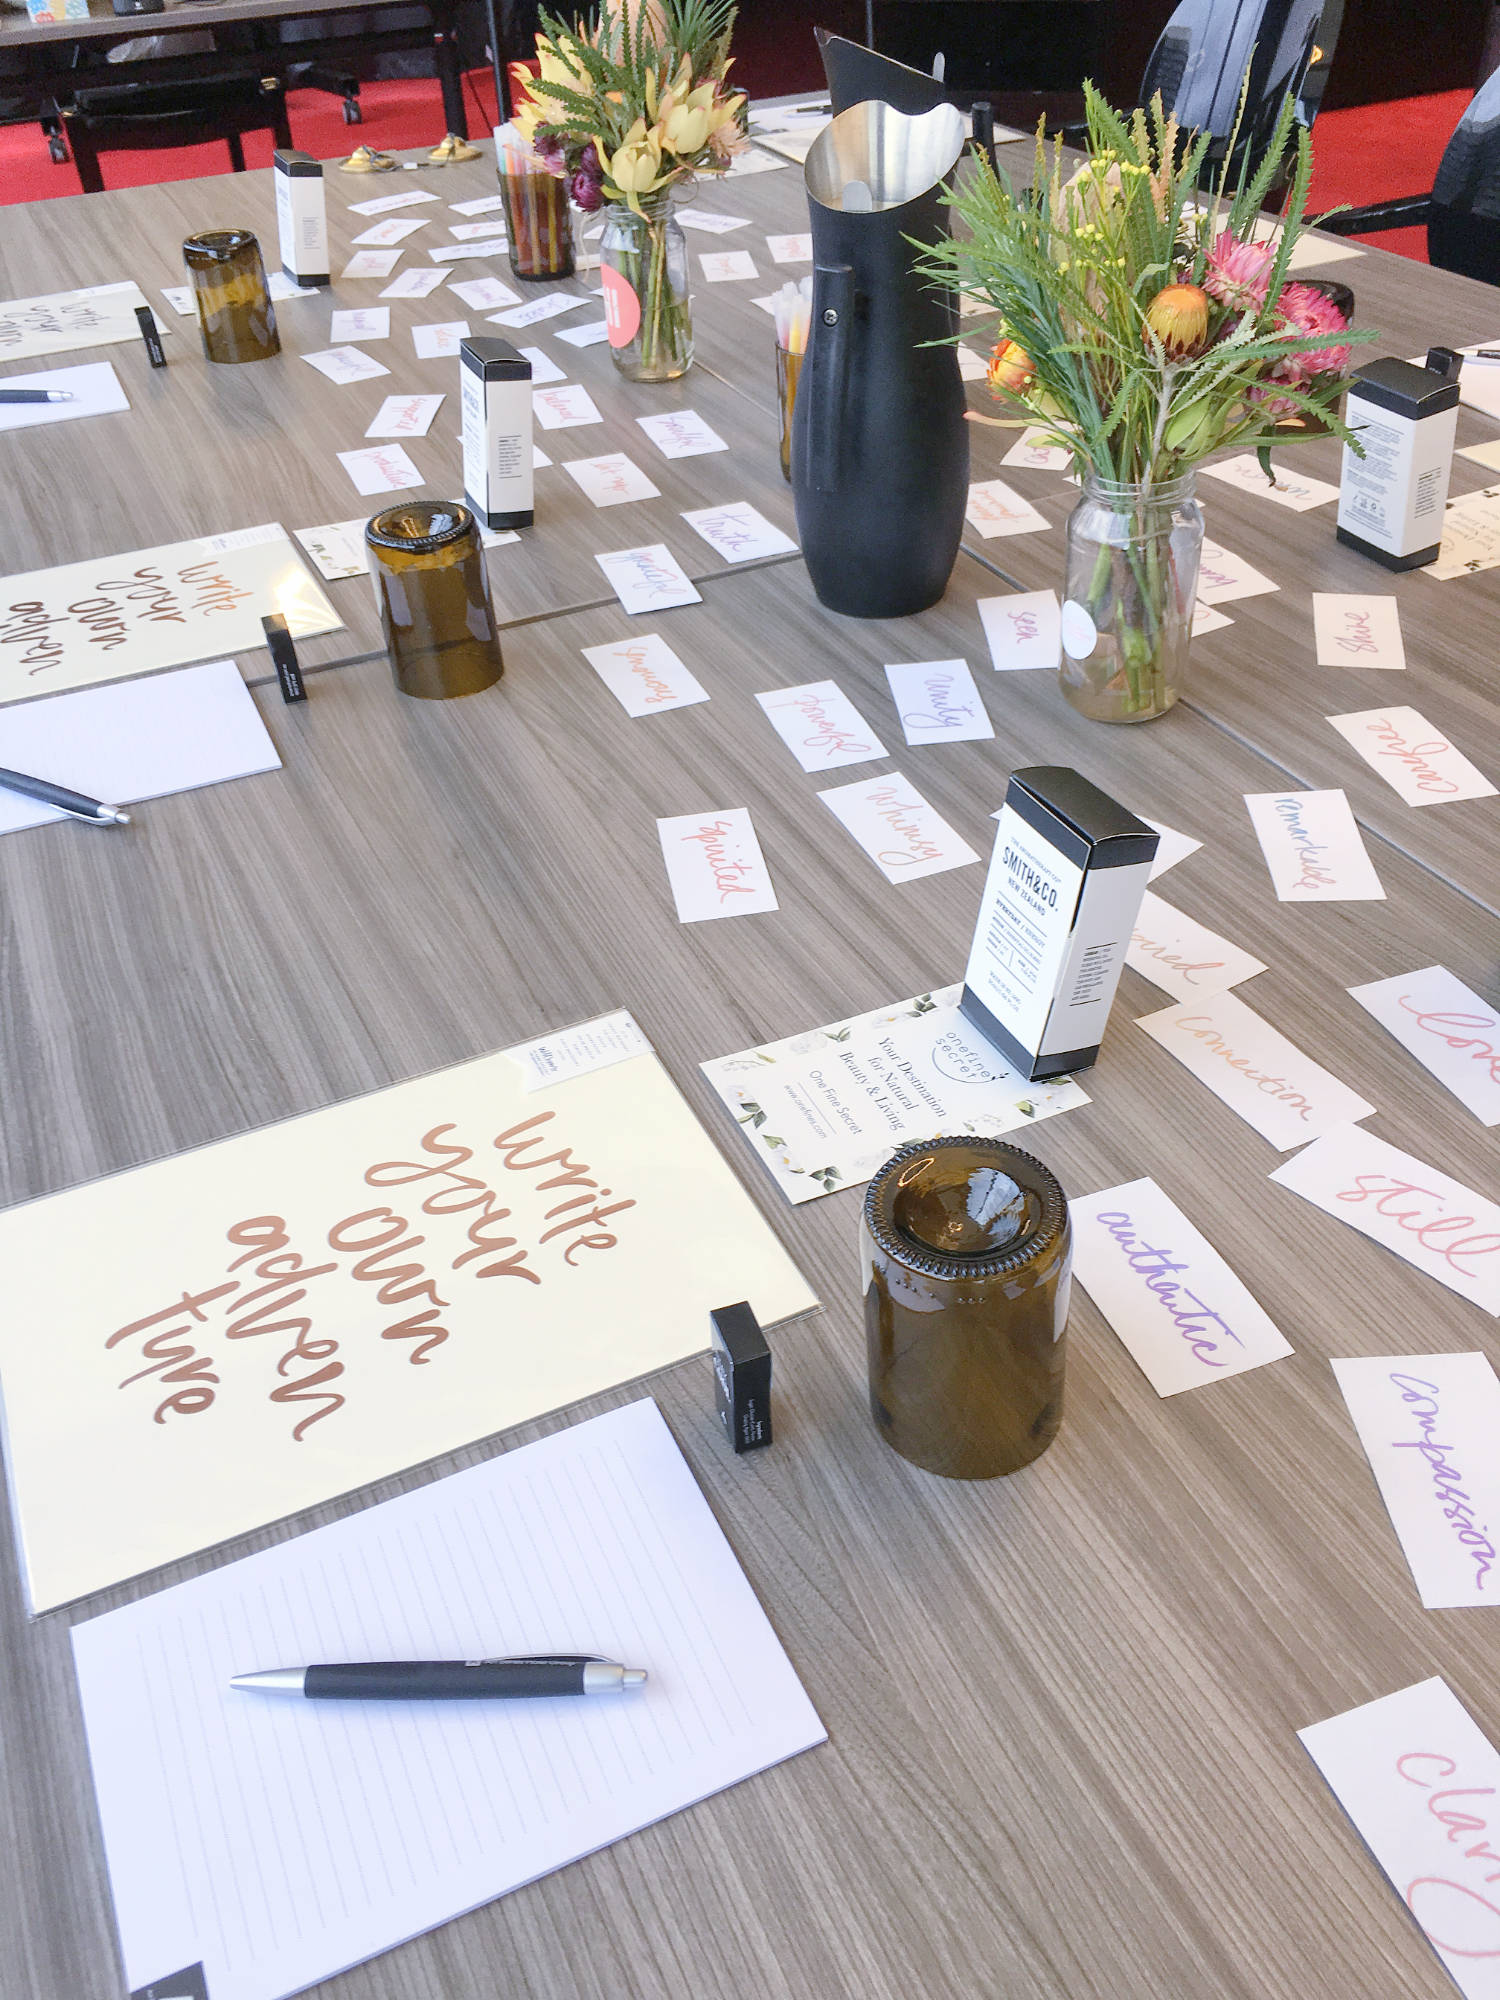 On the second day of the  Inspired and Intentional  urban retreat guests took home an essential oil blend from  One Fine Secret  and an art print by  Emma Kate Co.  Photo by Jade Tjia, 19 August 2017.